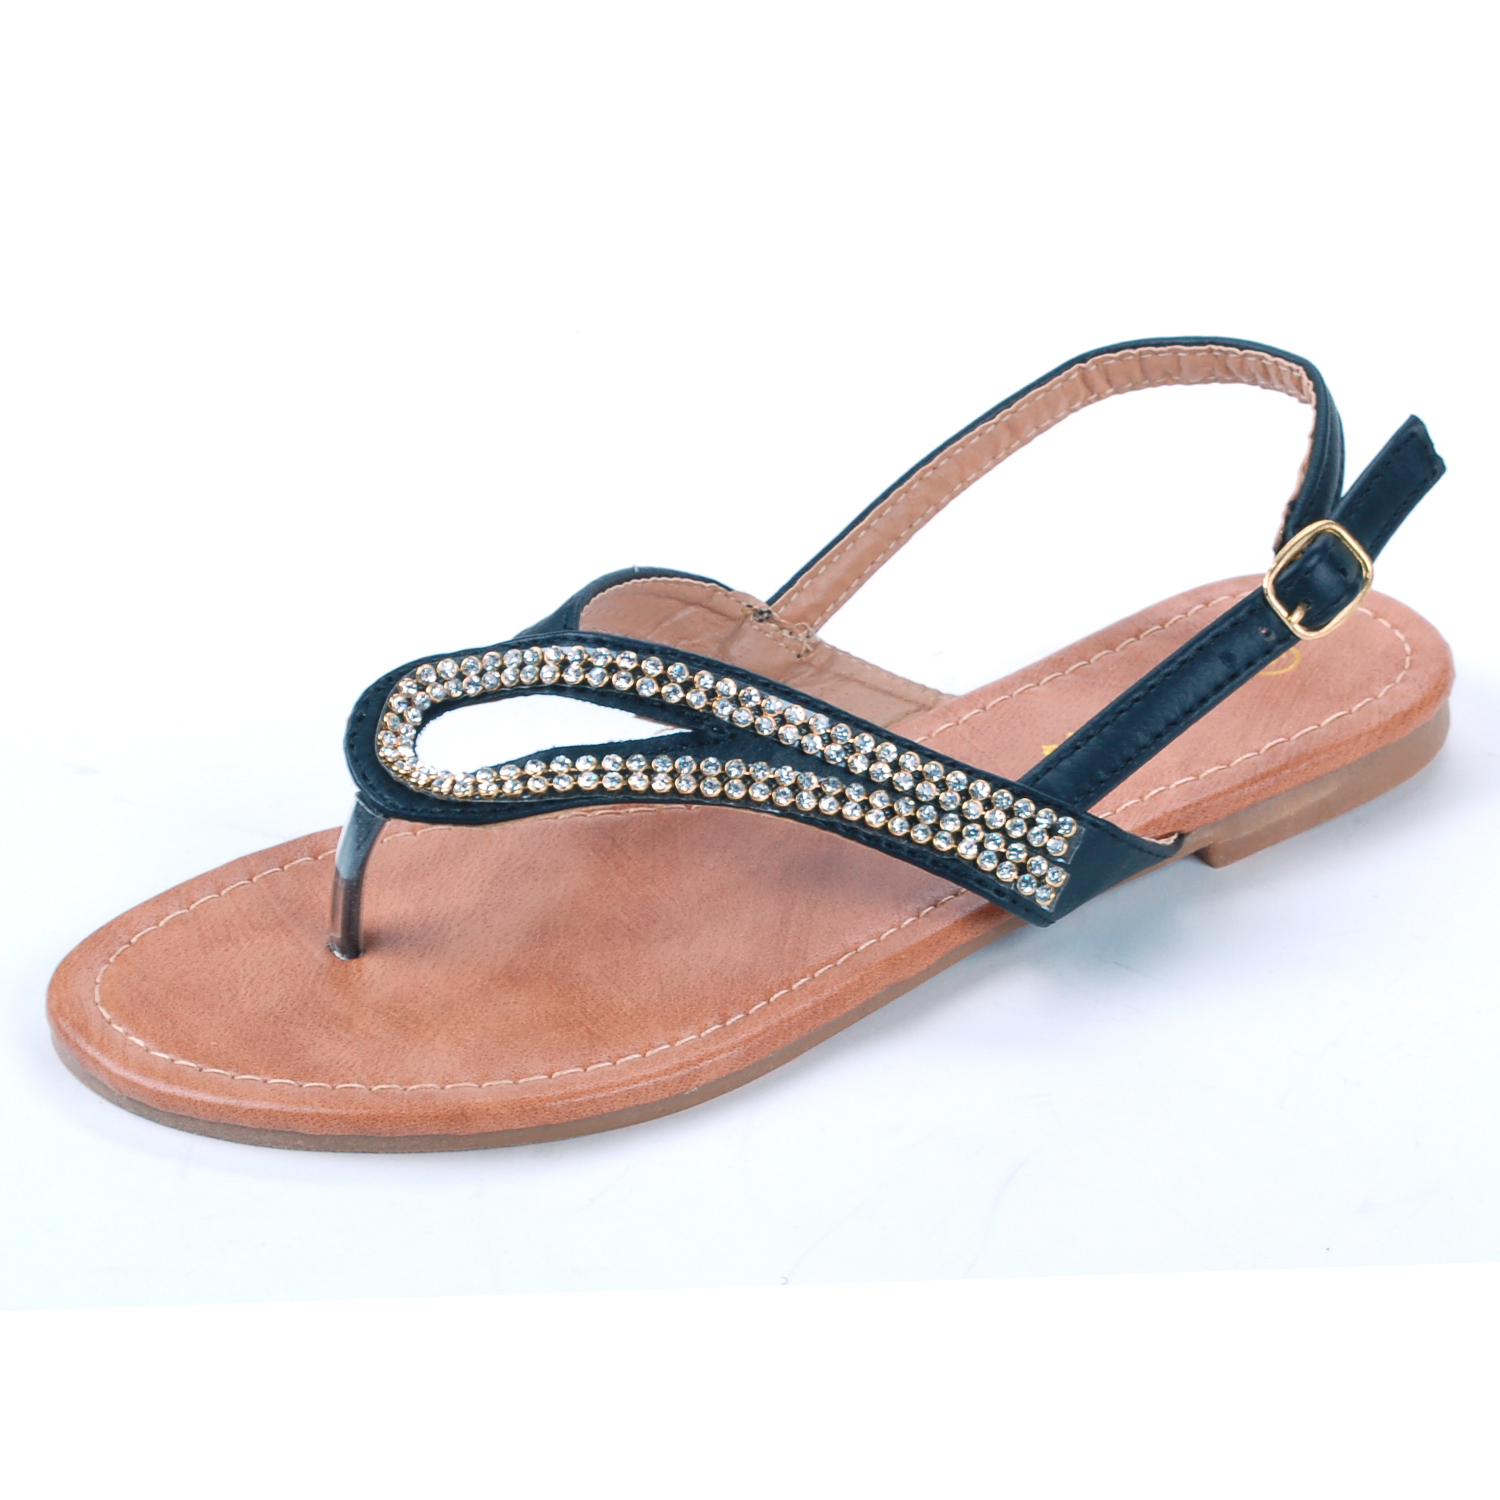 Luo Luo Dressy Rhinestone Flats Women's Sandals Thong Ankle Buckle Askew Slant Strap New